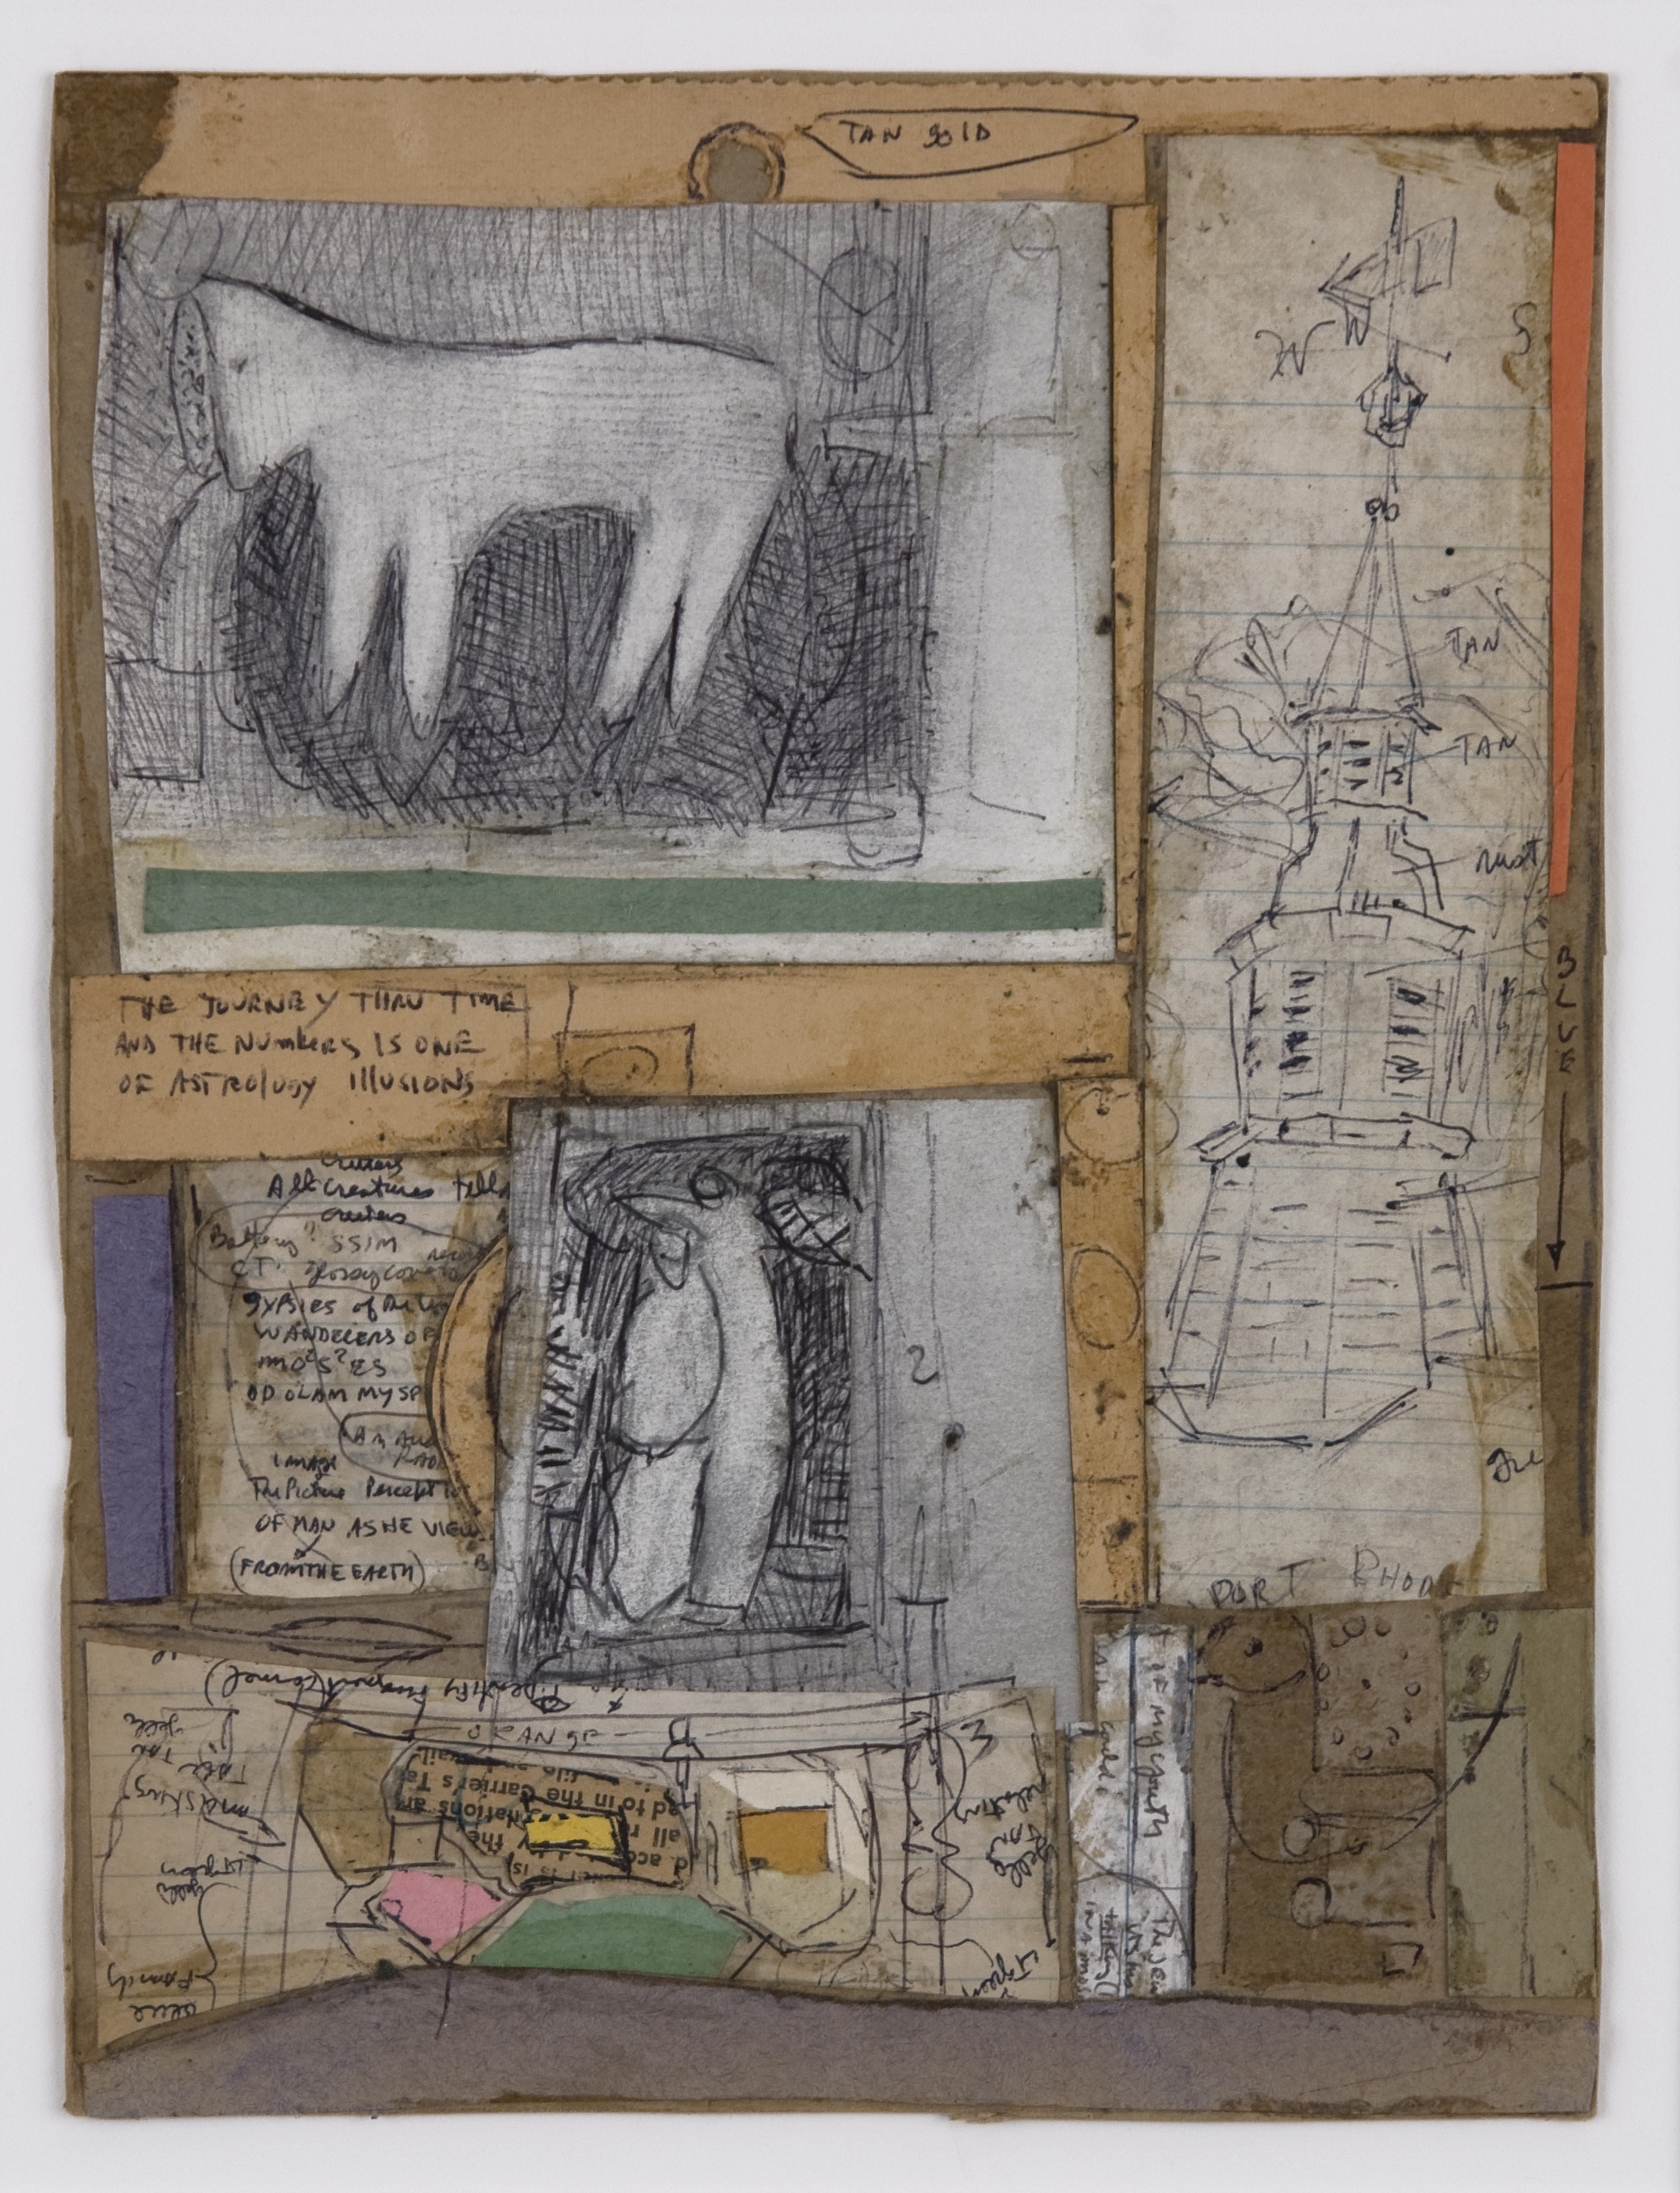 Jerry Wagner Tan Gold, c.1990s Mixed media, collage/paper 8.25 x 6.25 inches  /  21 x 15.9 cm  /  JWa 8